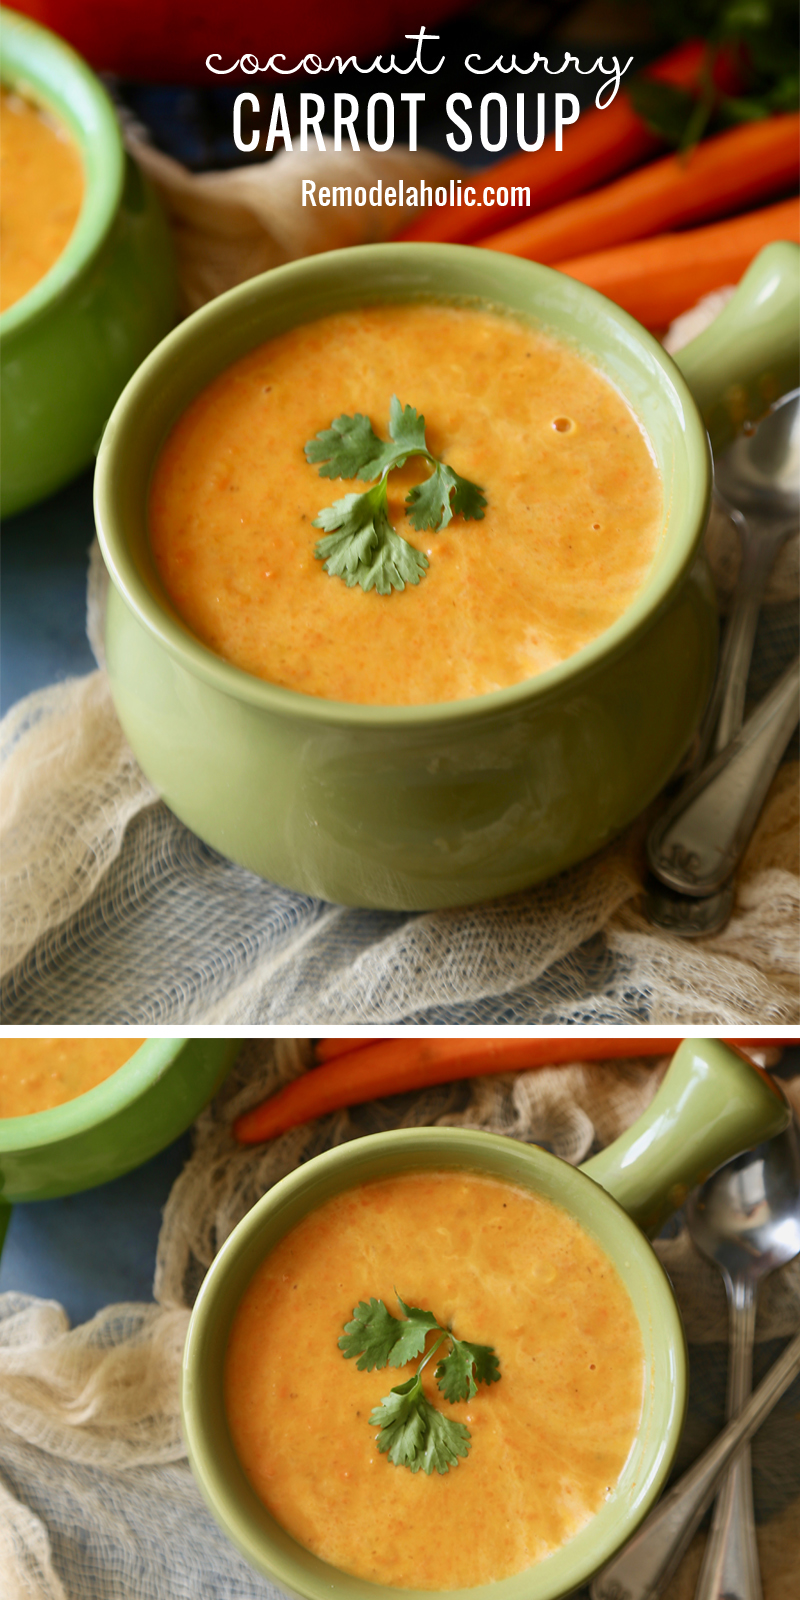 This versatile soup can be served warm or cold! Try the recipe for Coconut Curry Carrot Soup at Remodelaholic.com